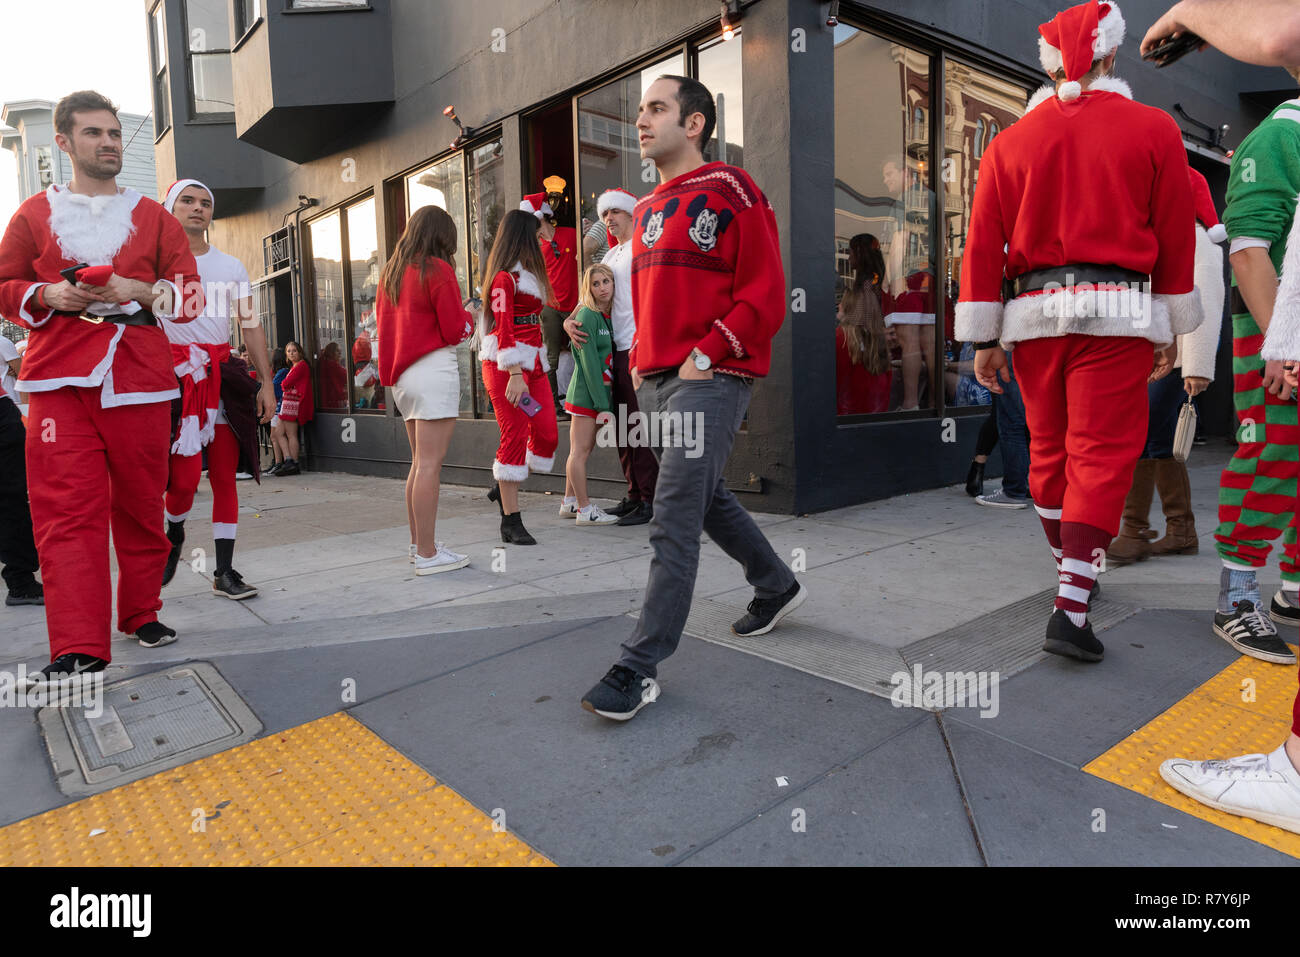 Fêtards à San Francisco habillé en père Noël/Christmas costumes pour le SantaCon annuel pub crawl. Photo Stock